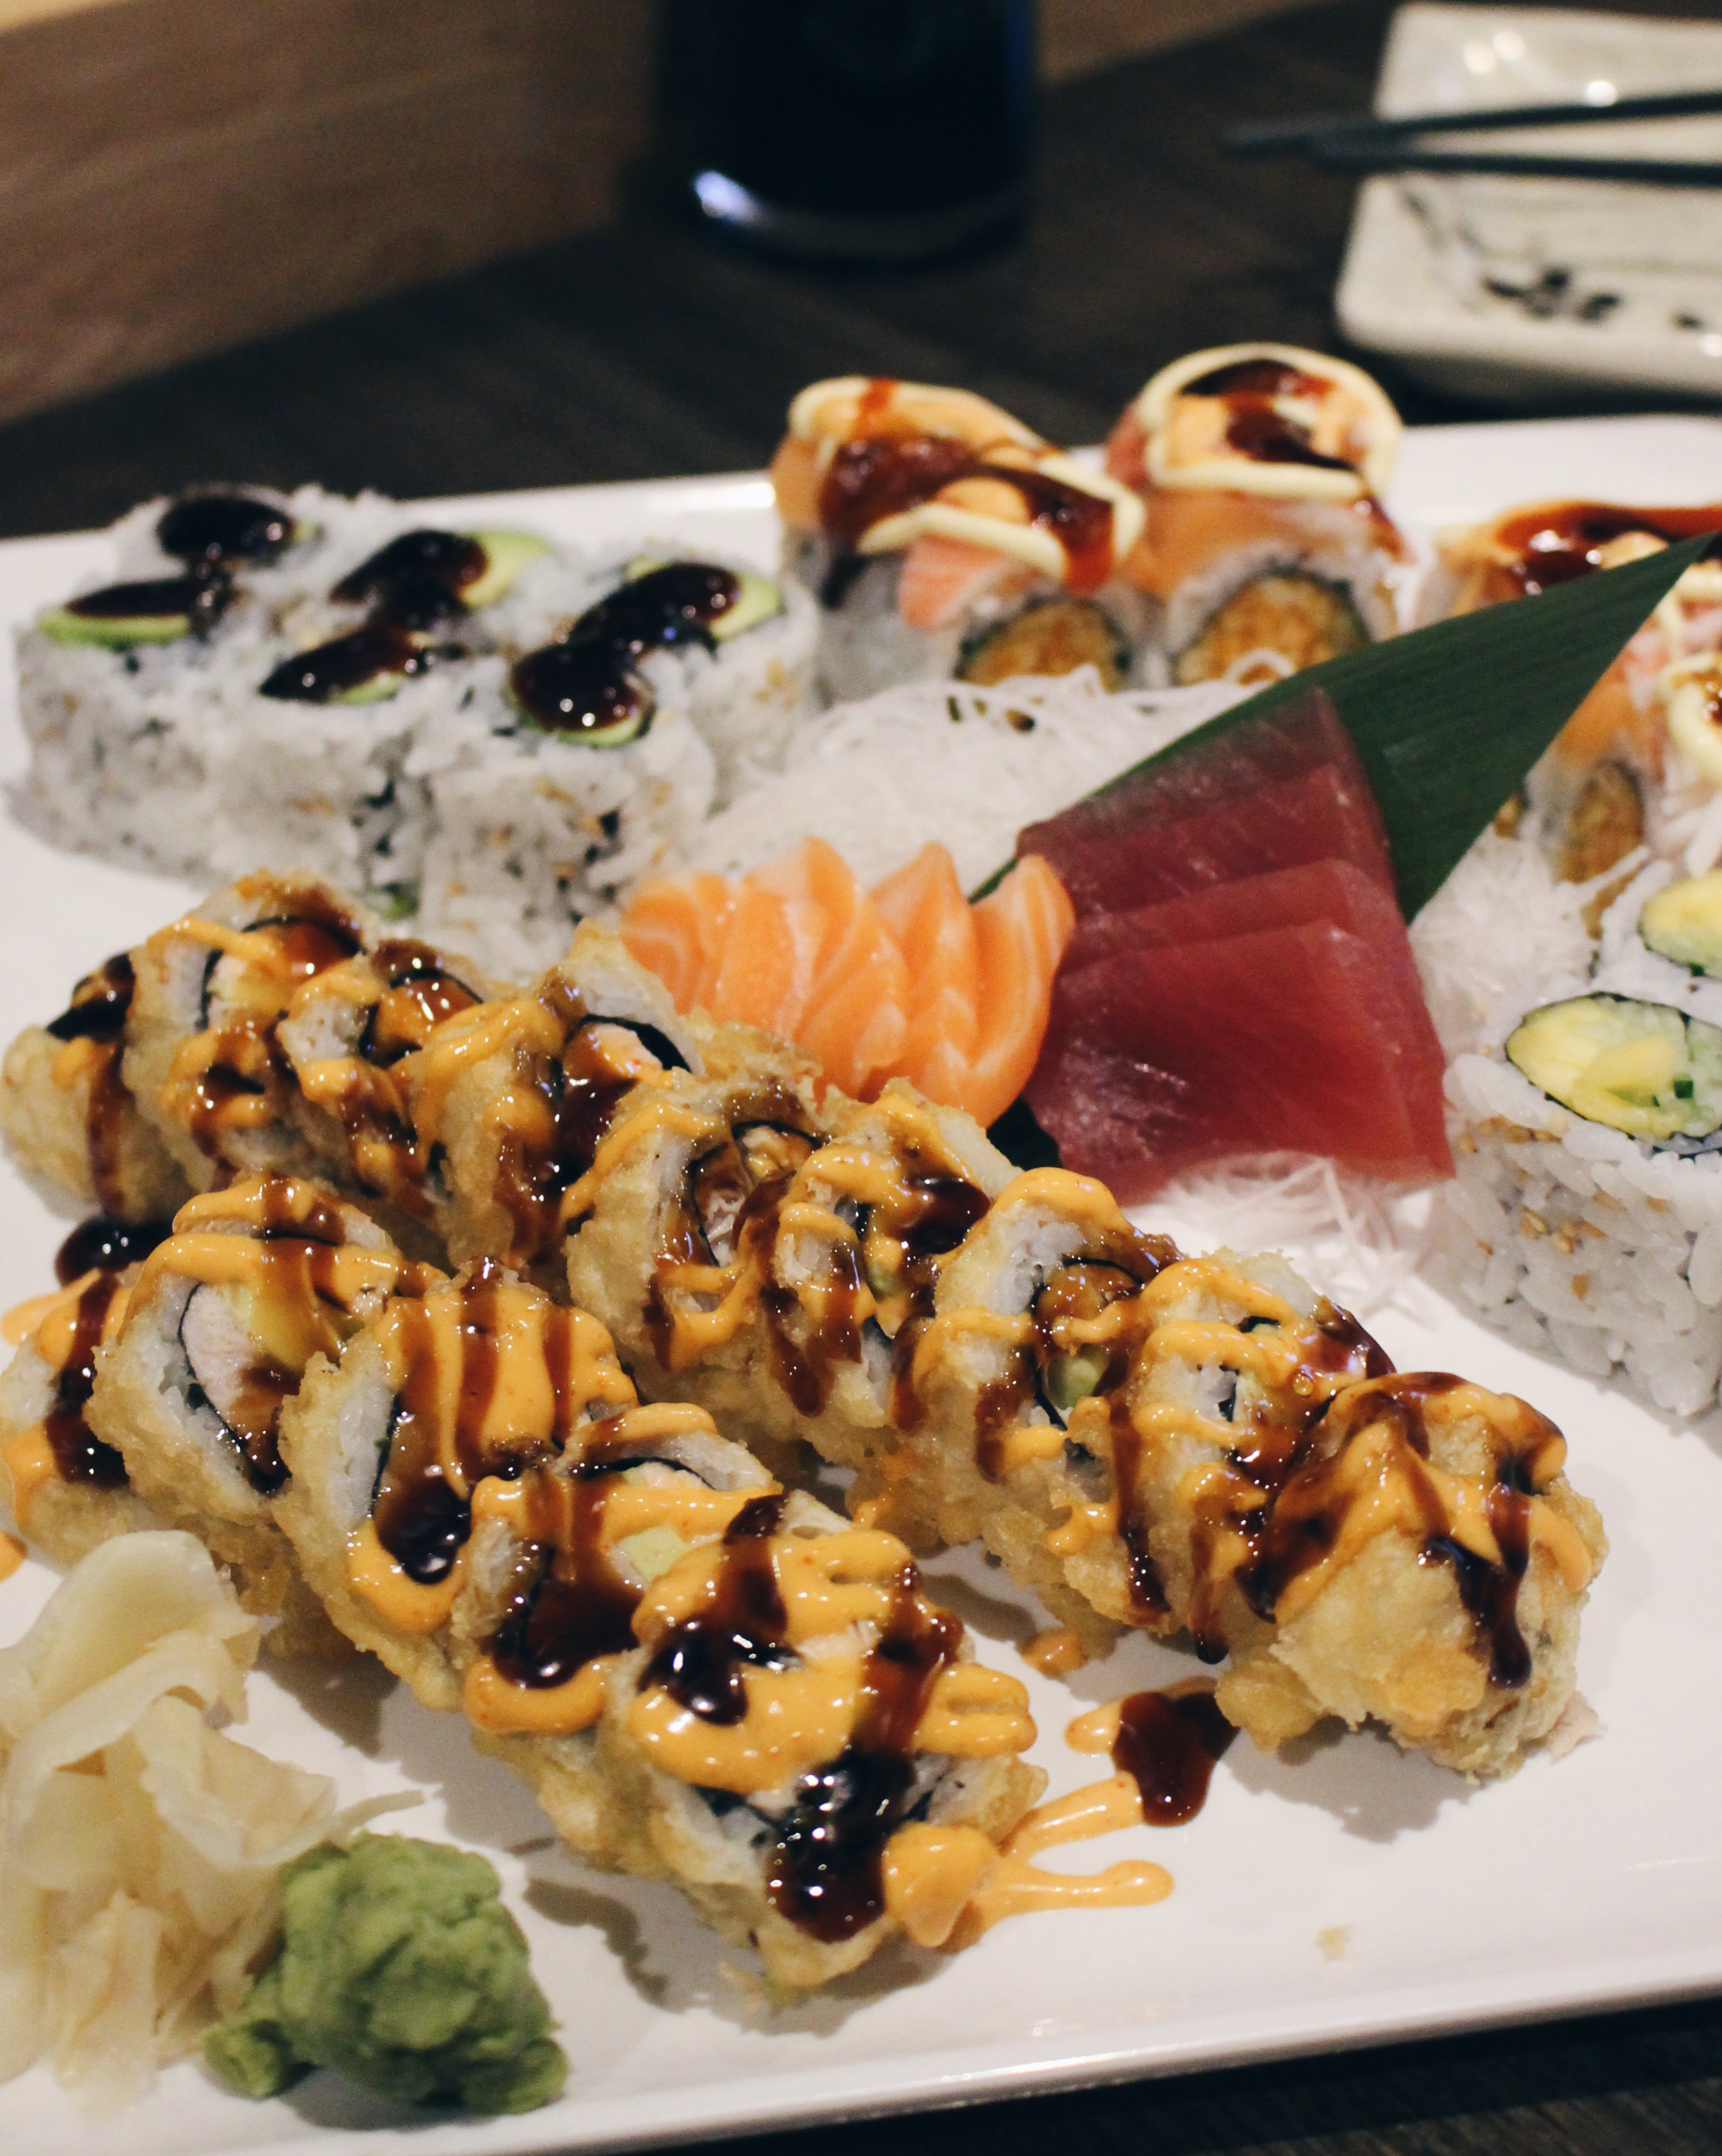 Where To Find All You Can Eat Sushi In Boston